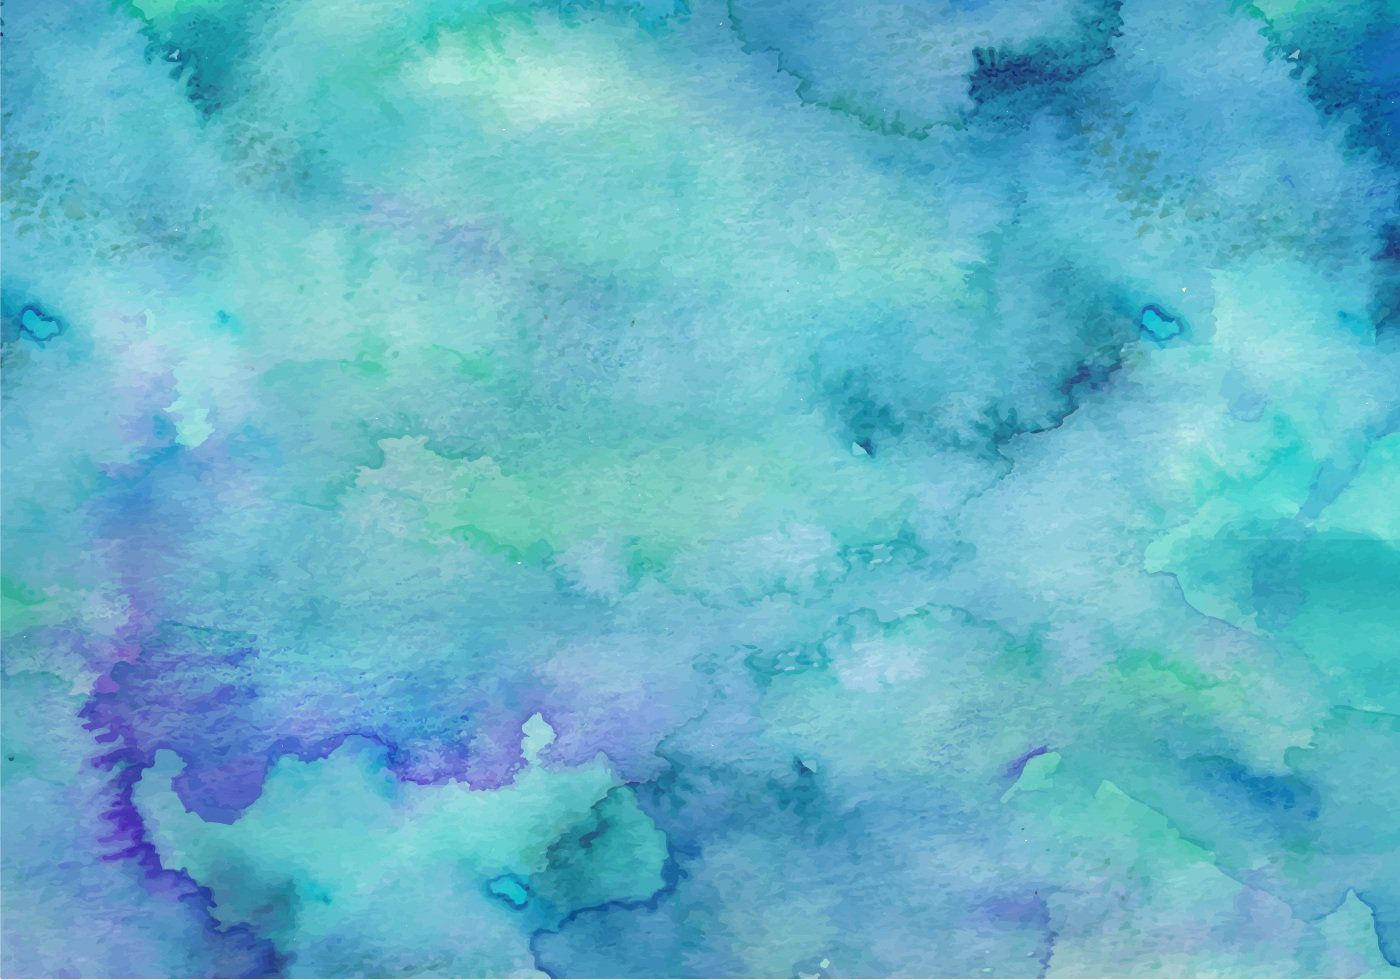 Teal Free Vector Watercolor Background Watercolor Background